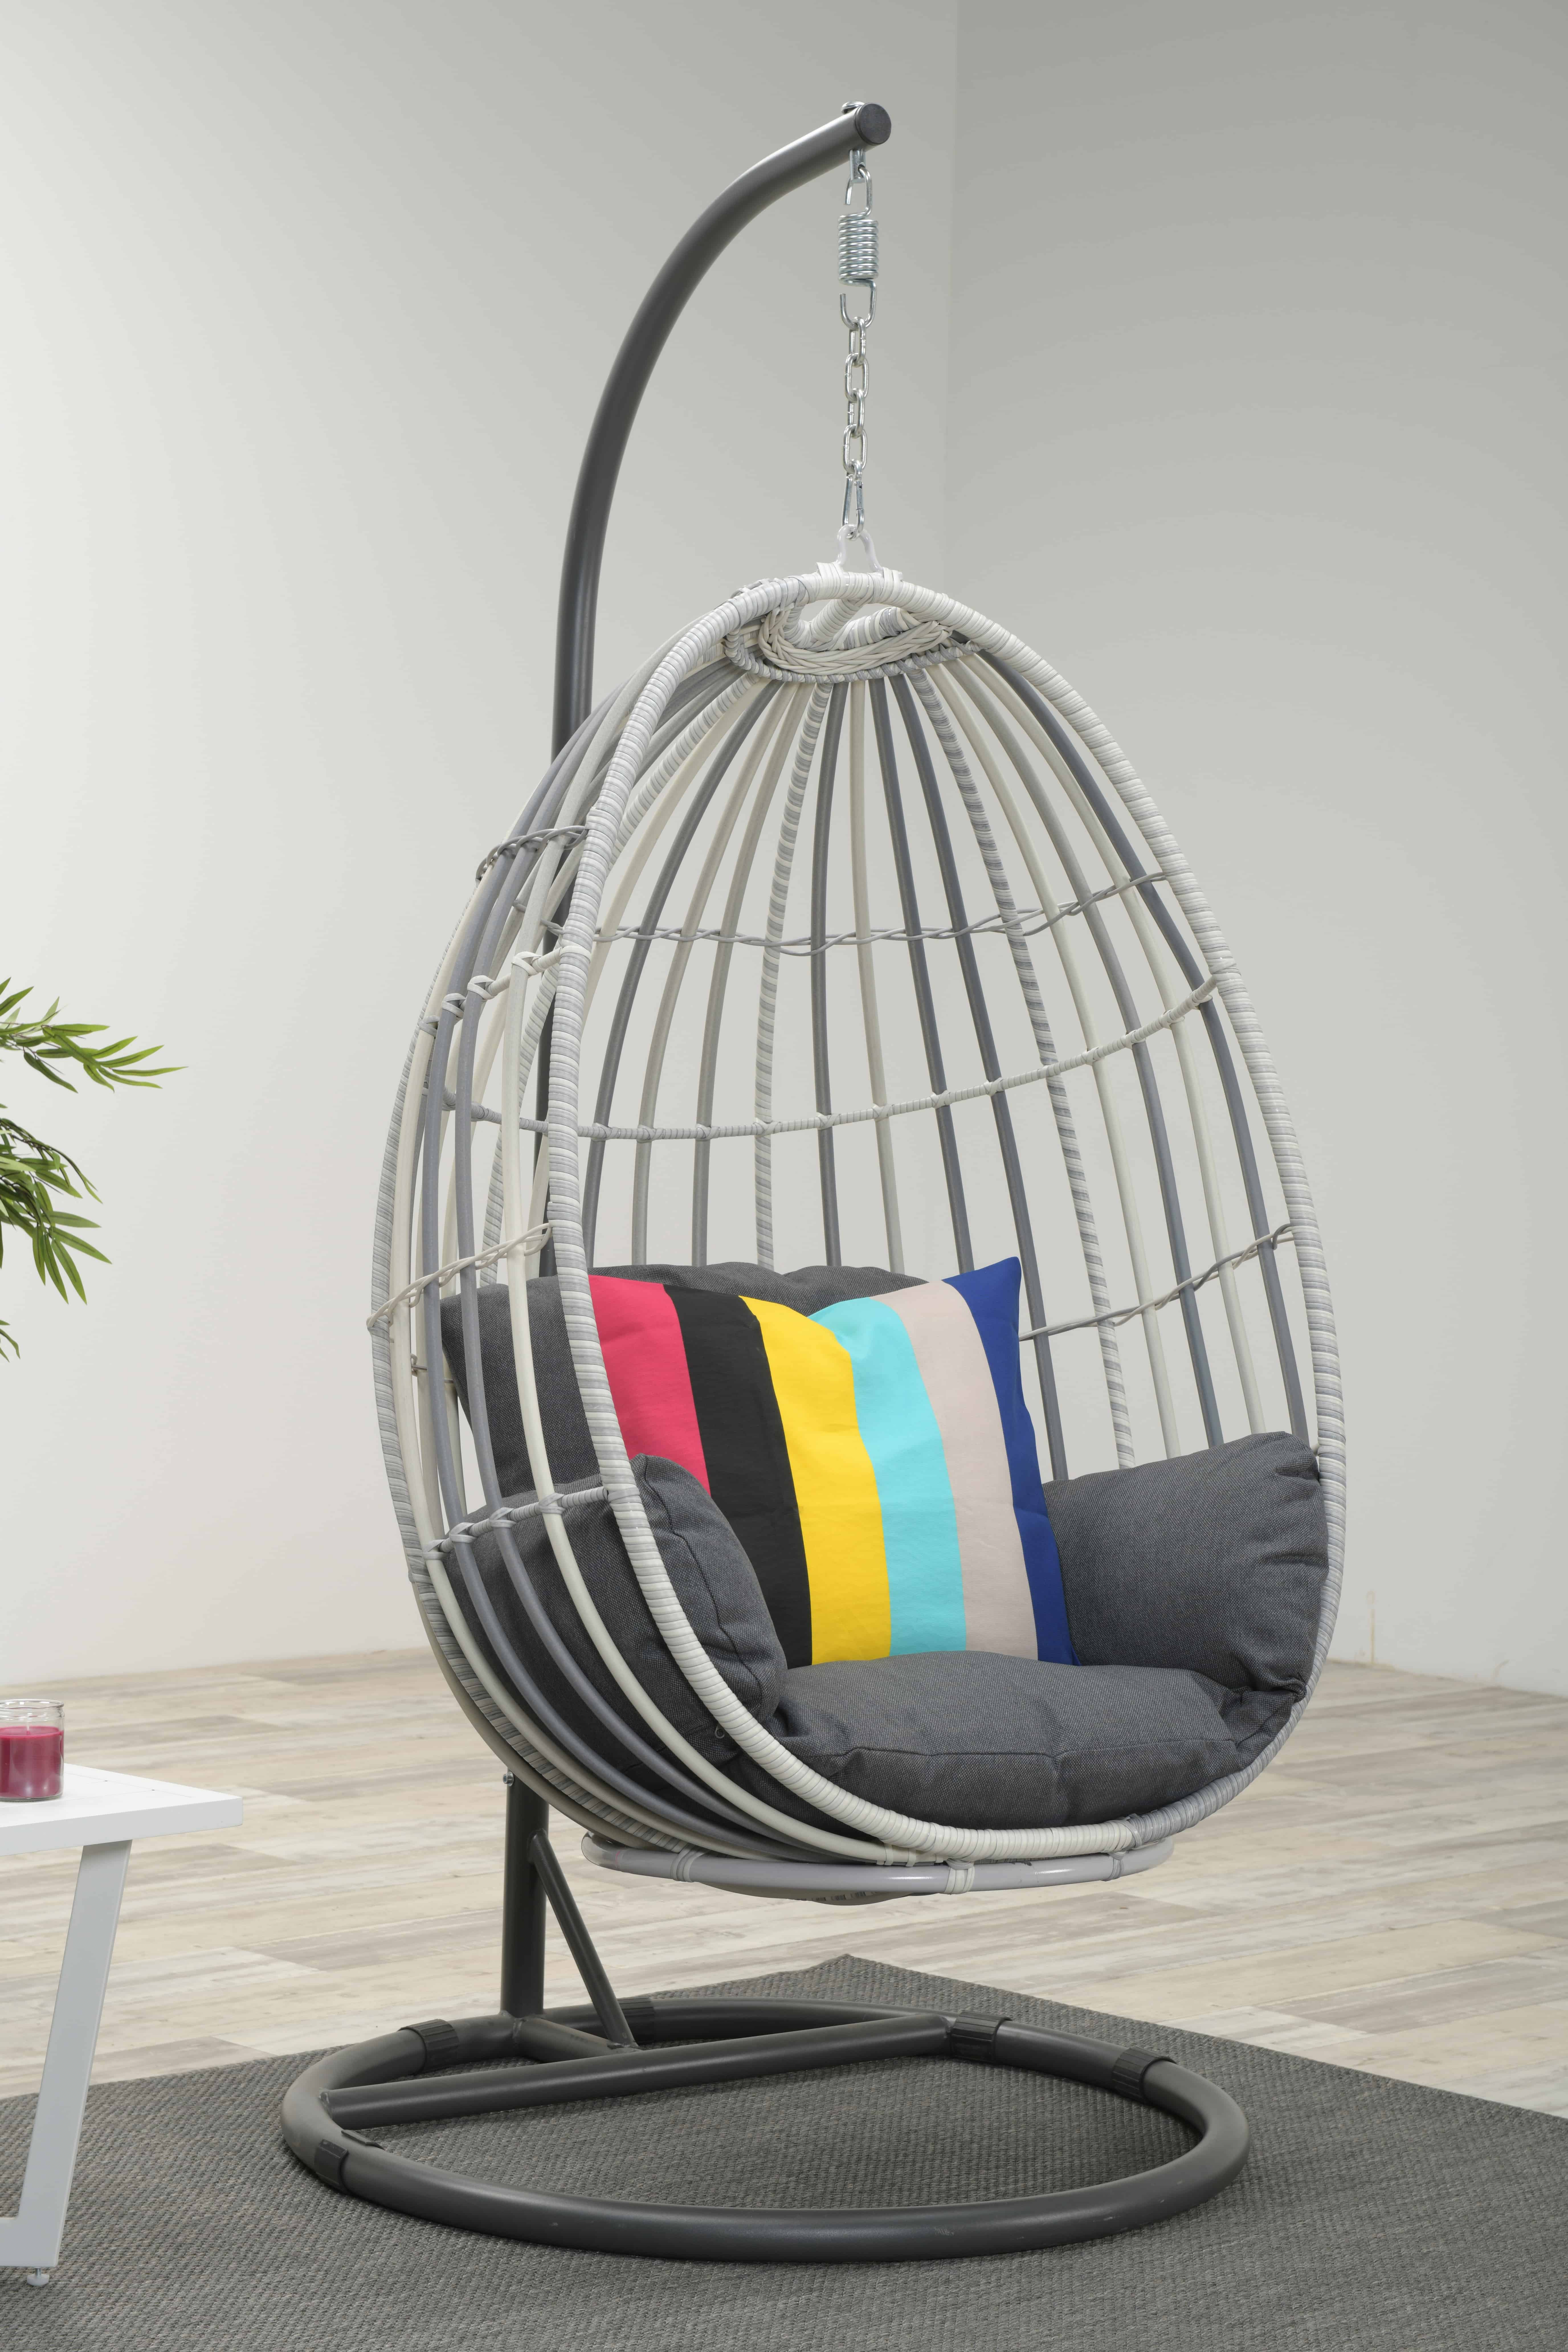 Egg Shaped Outdoor Chairs - Aumondeduvin.com